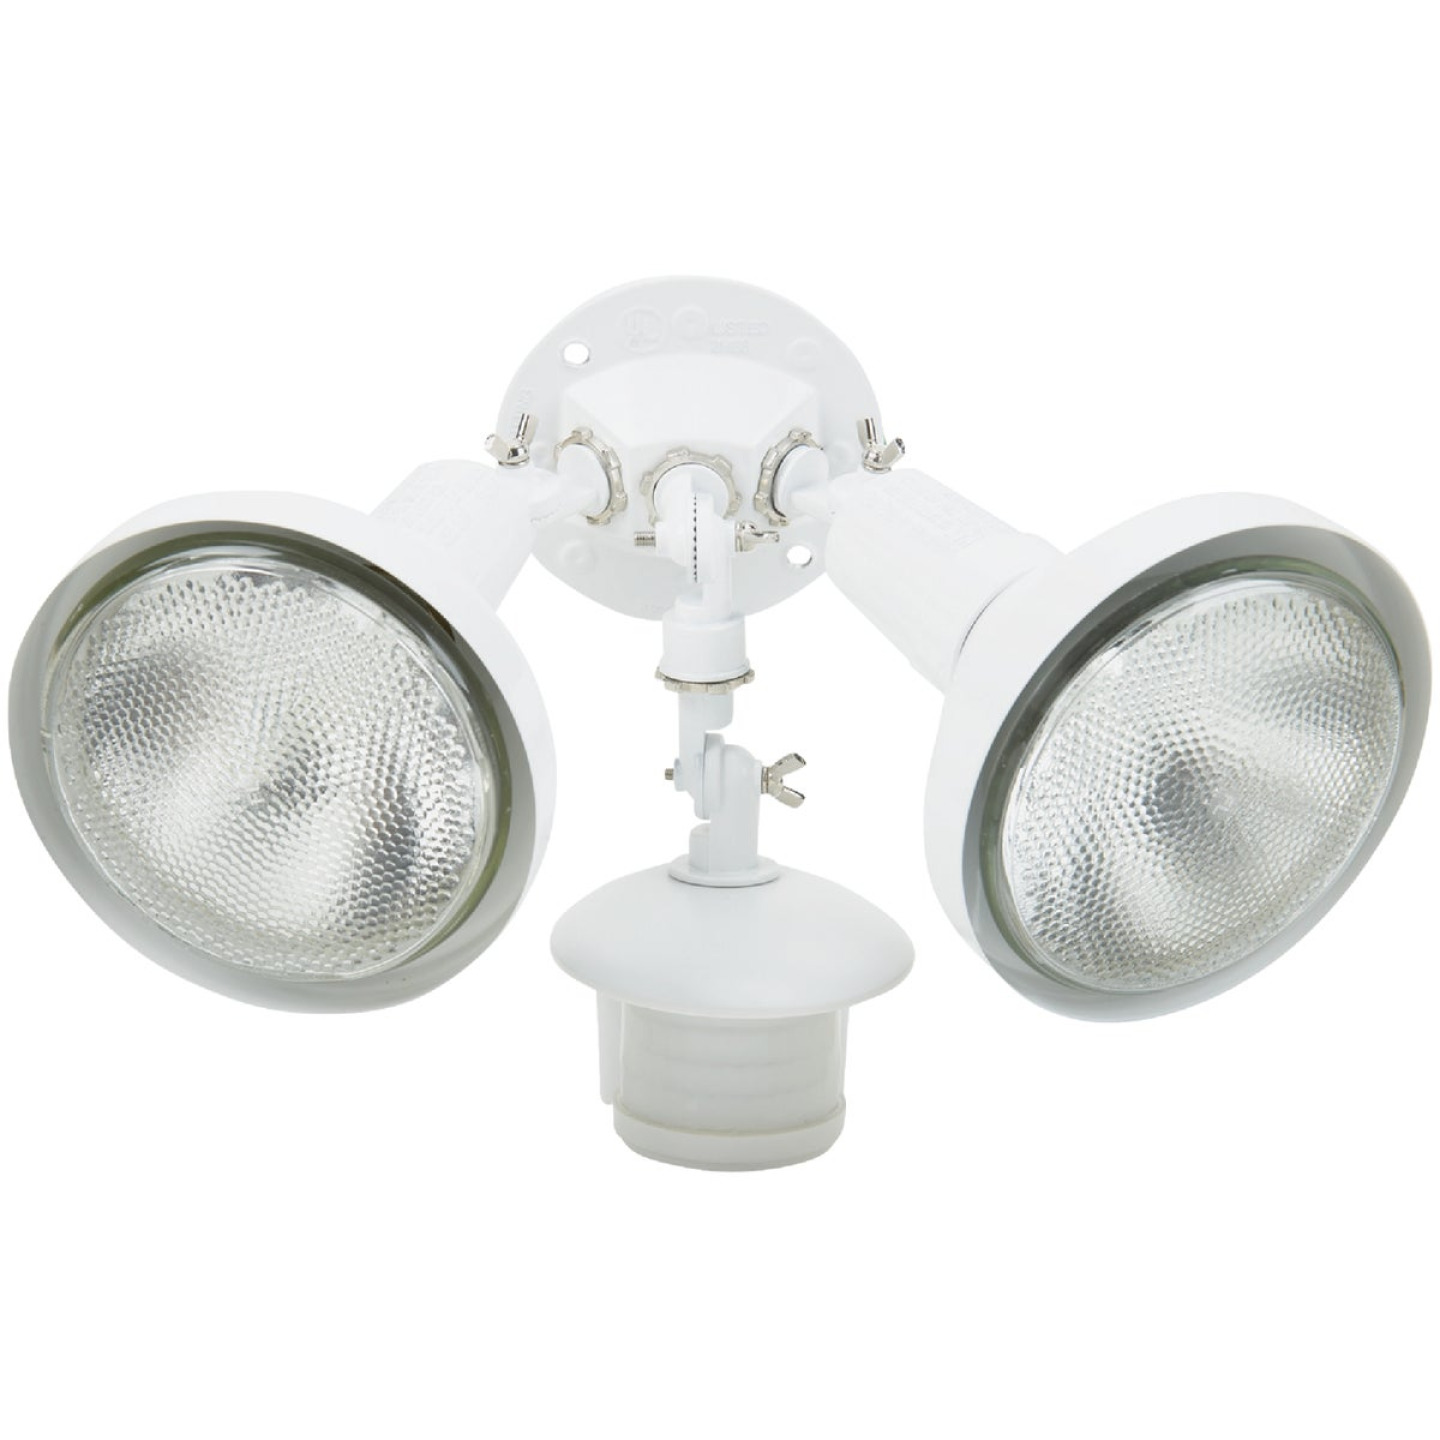 White Motion Sensing Dusk To Dawn Incandescent Floodlight Fixture Image 1